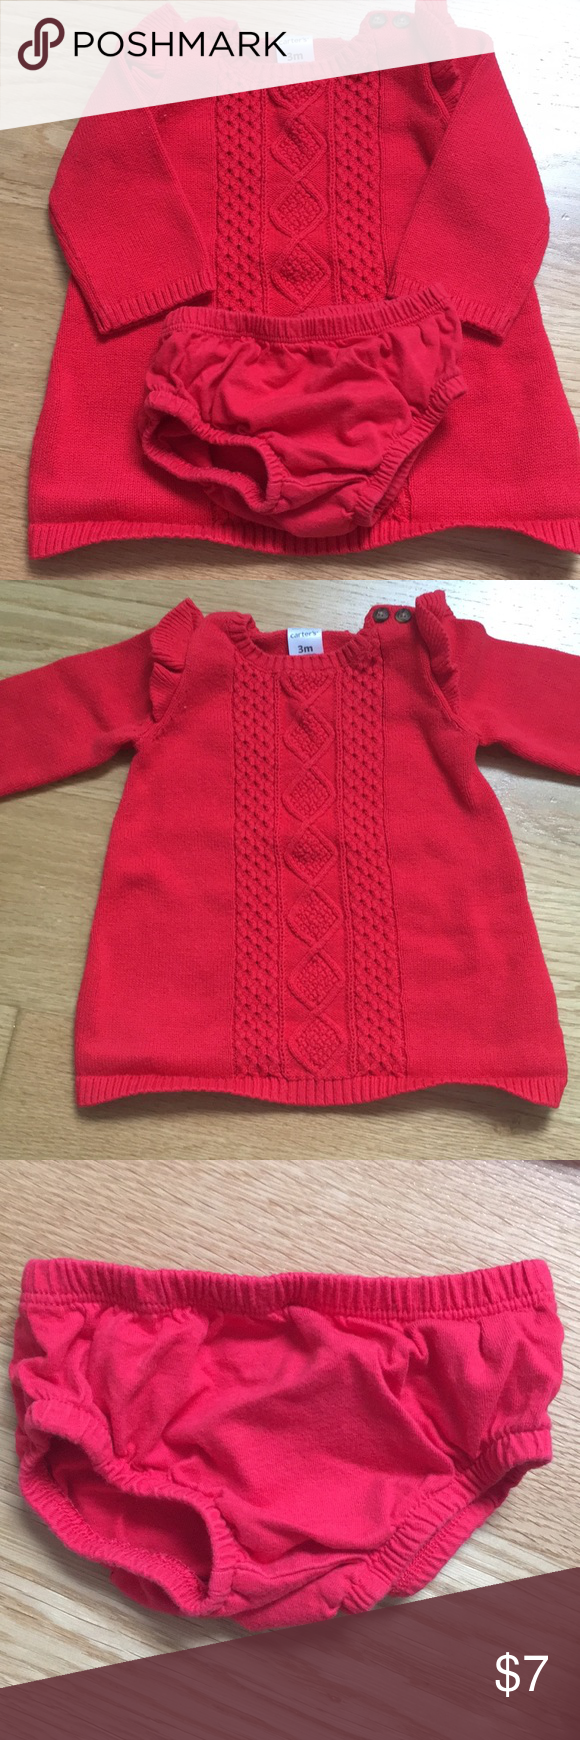 Baby Girl Red Sweater Dress Size 3 Months Red Sweater Dress Red Sweaters Carters Dresses [ 1740 x 580 Pixel ]